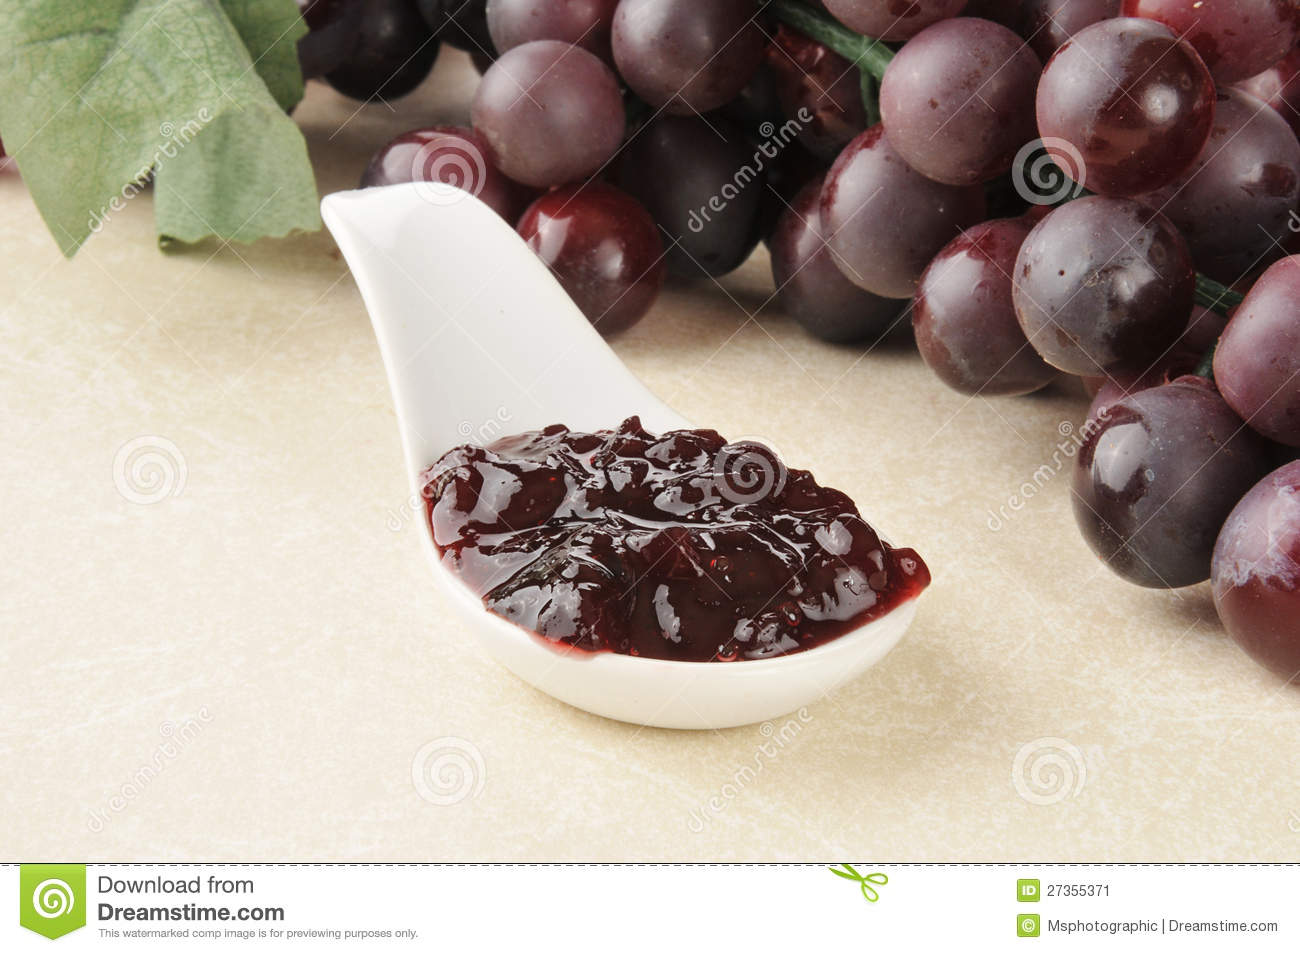 how to make grape jelly from fresh grapes